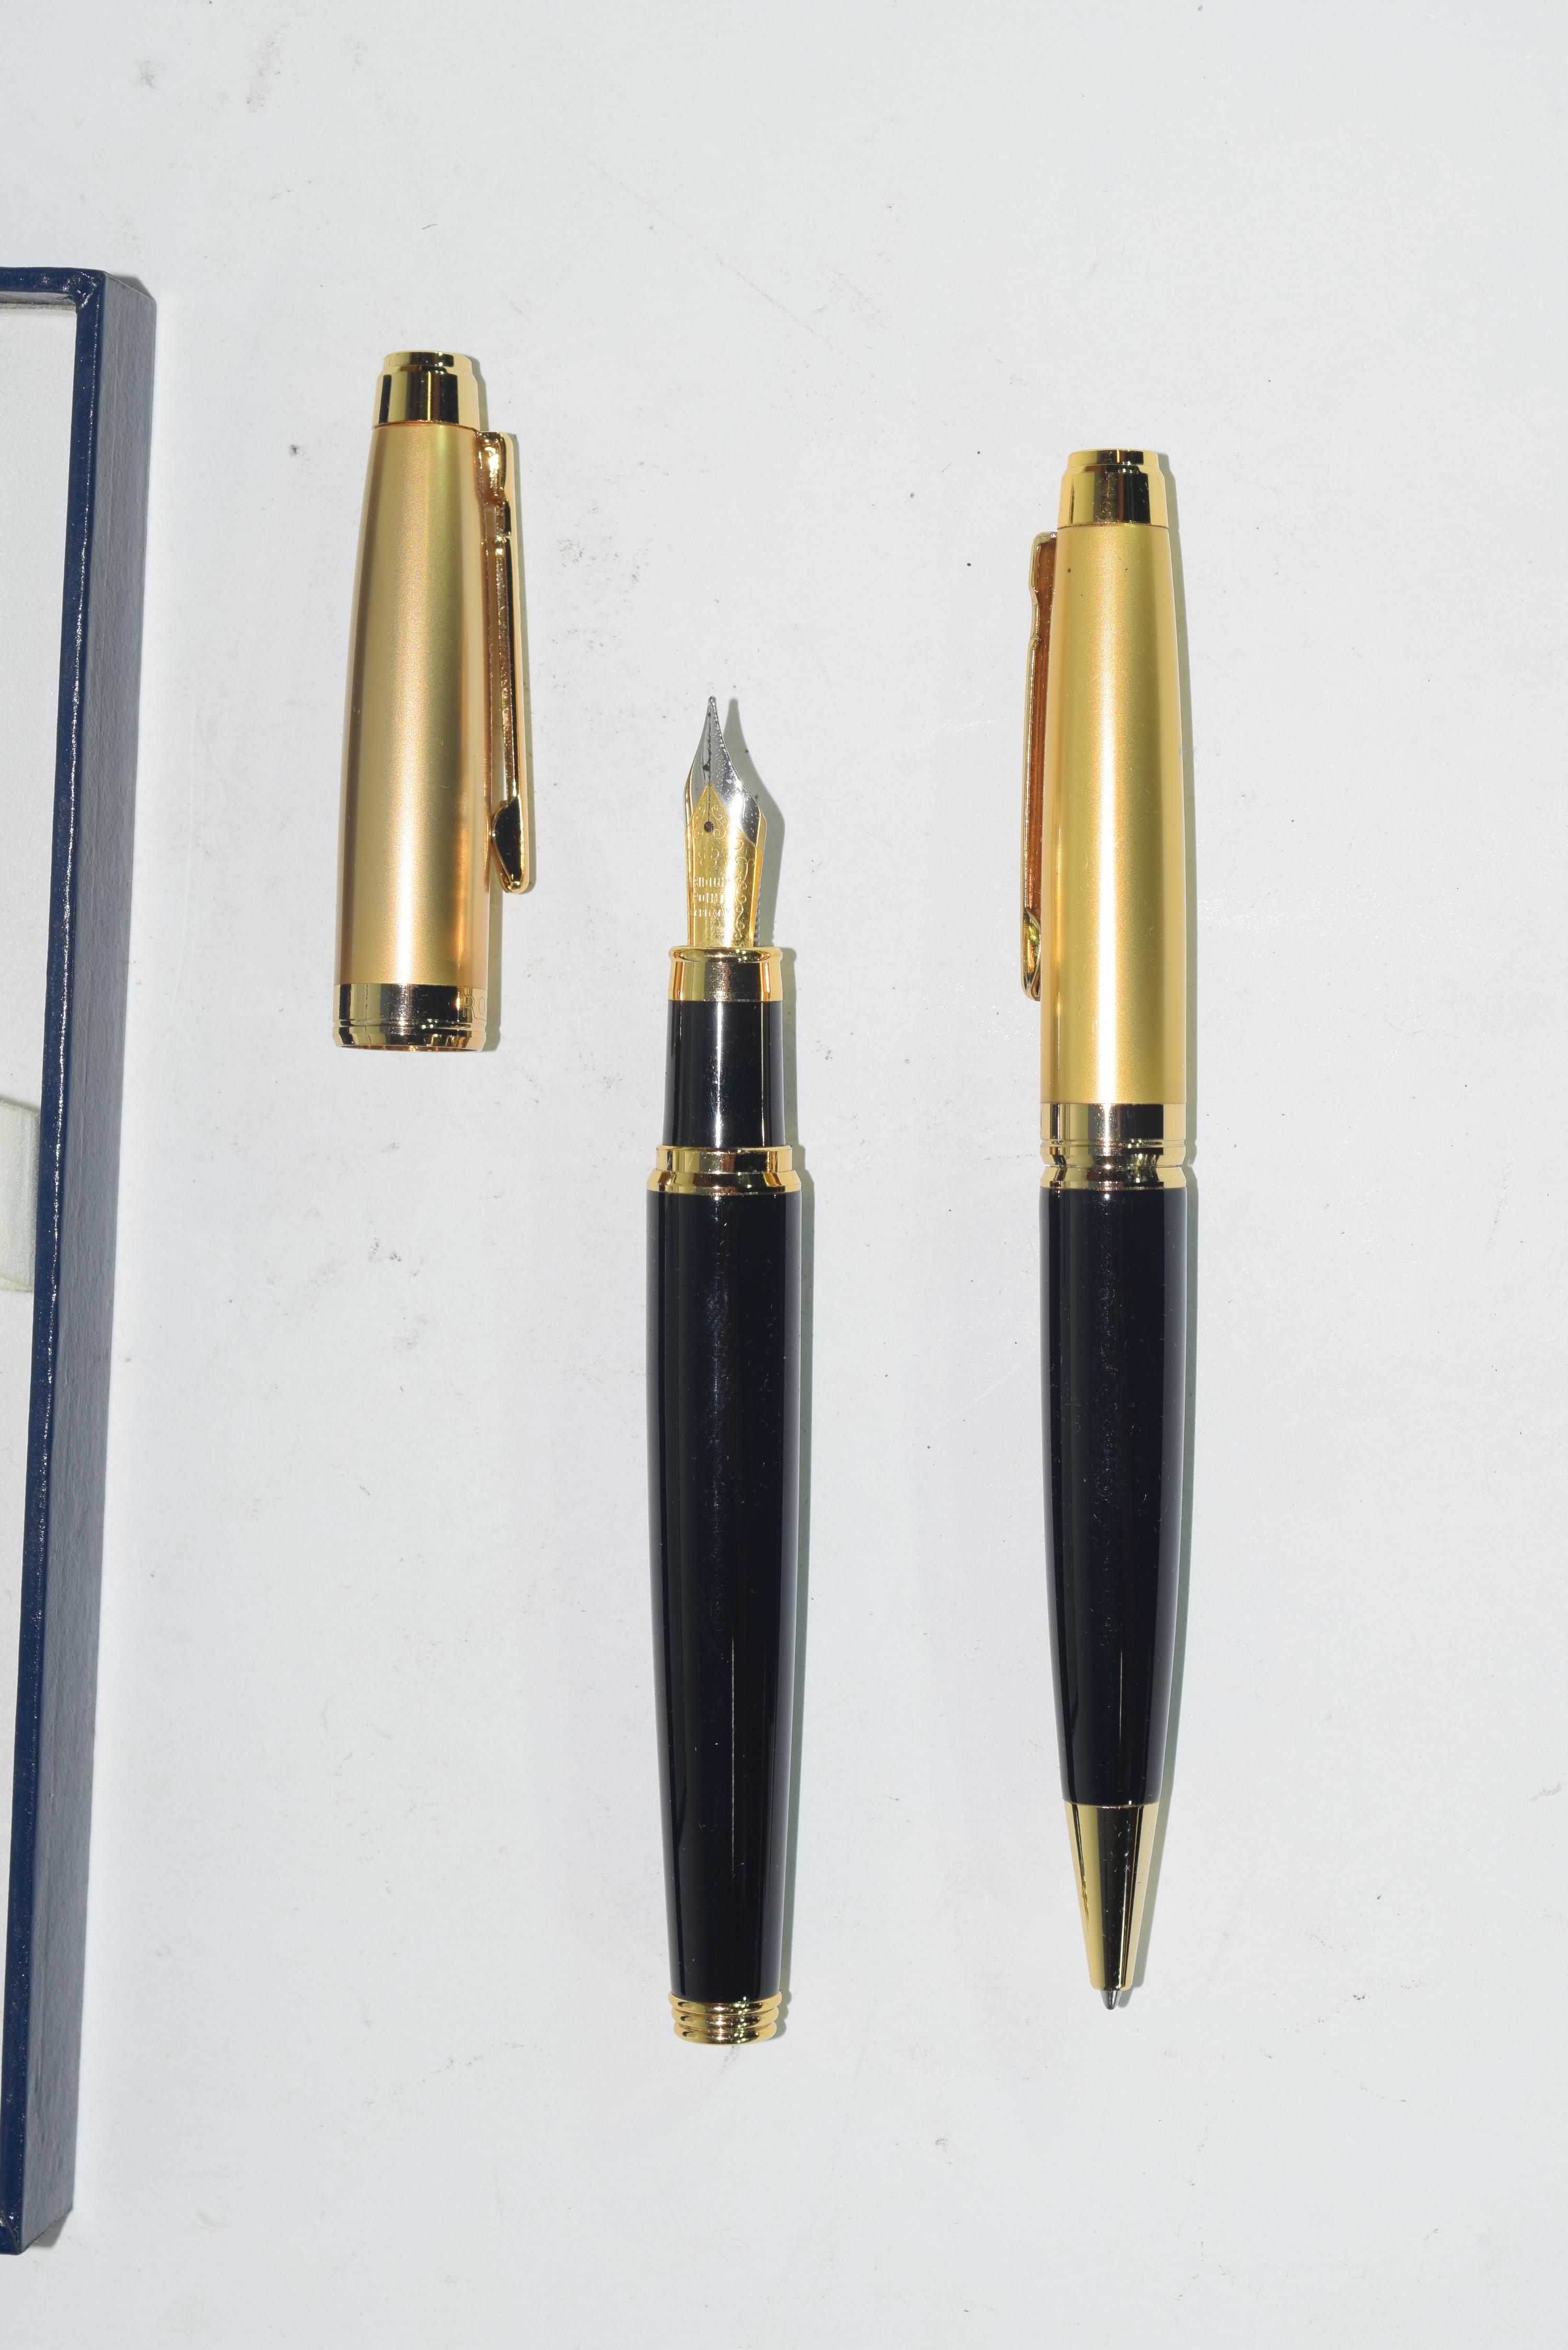 Ronson fountain pen and pencil - Image 2 of 3